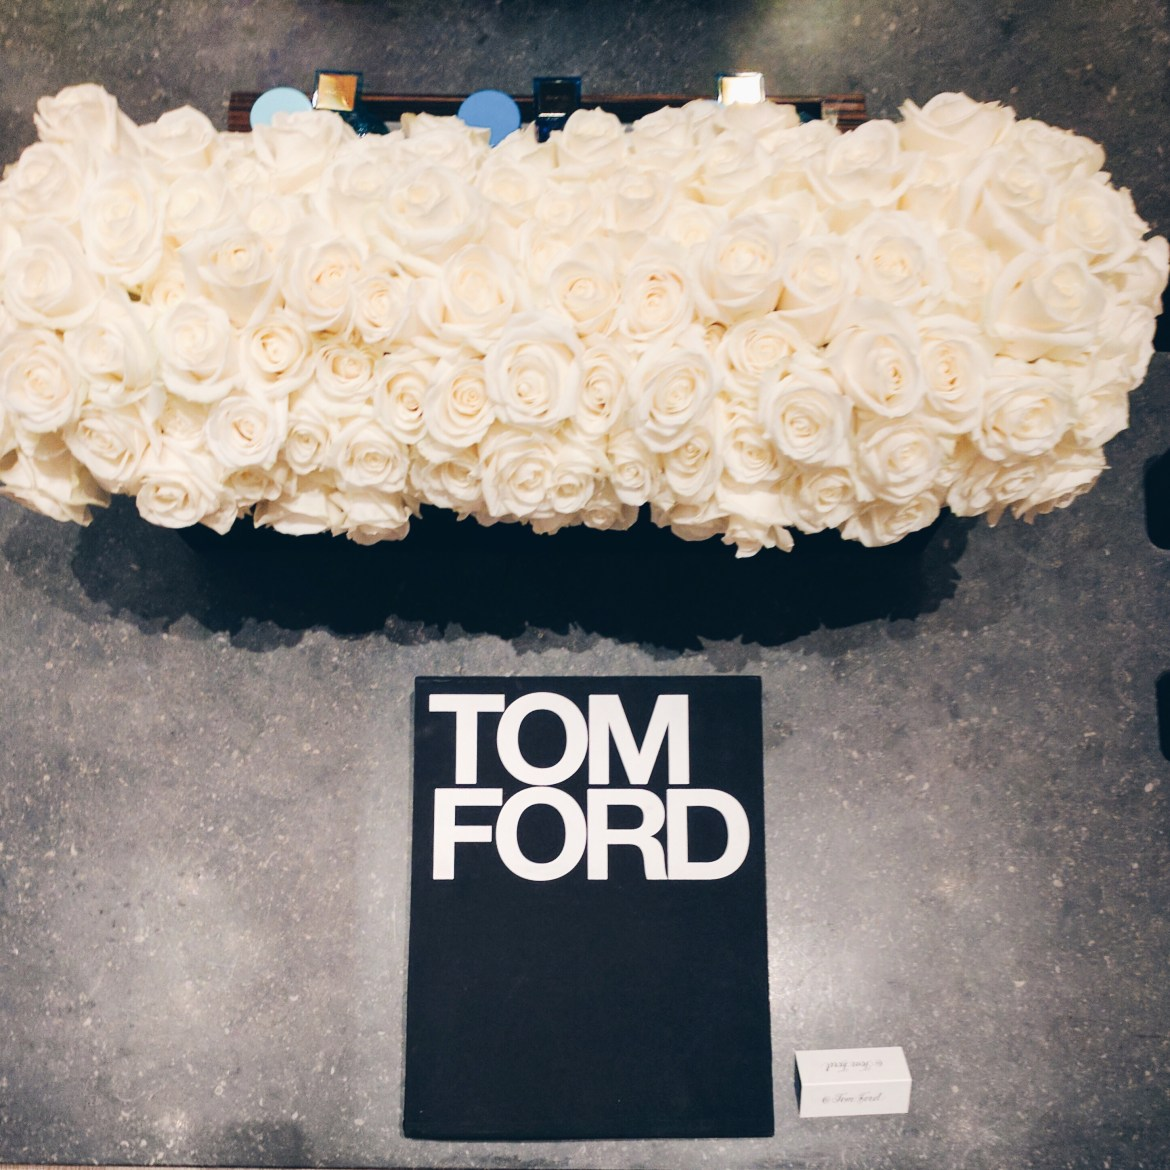 Tom Ford LFW lounge